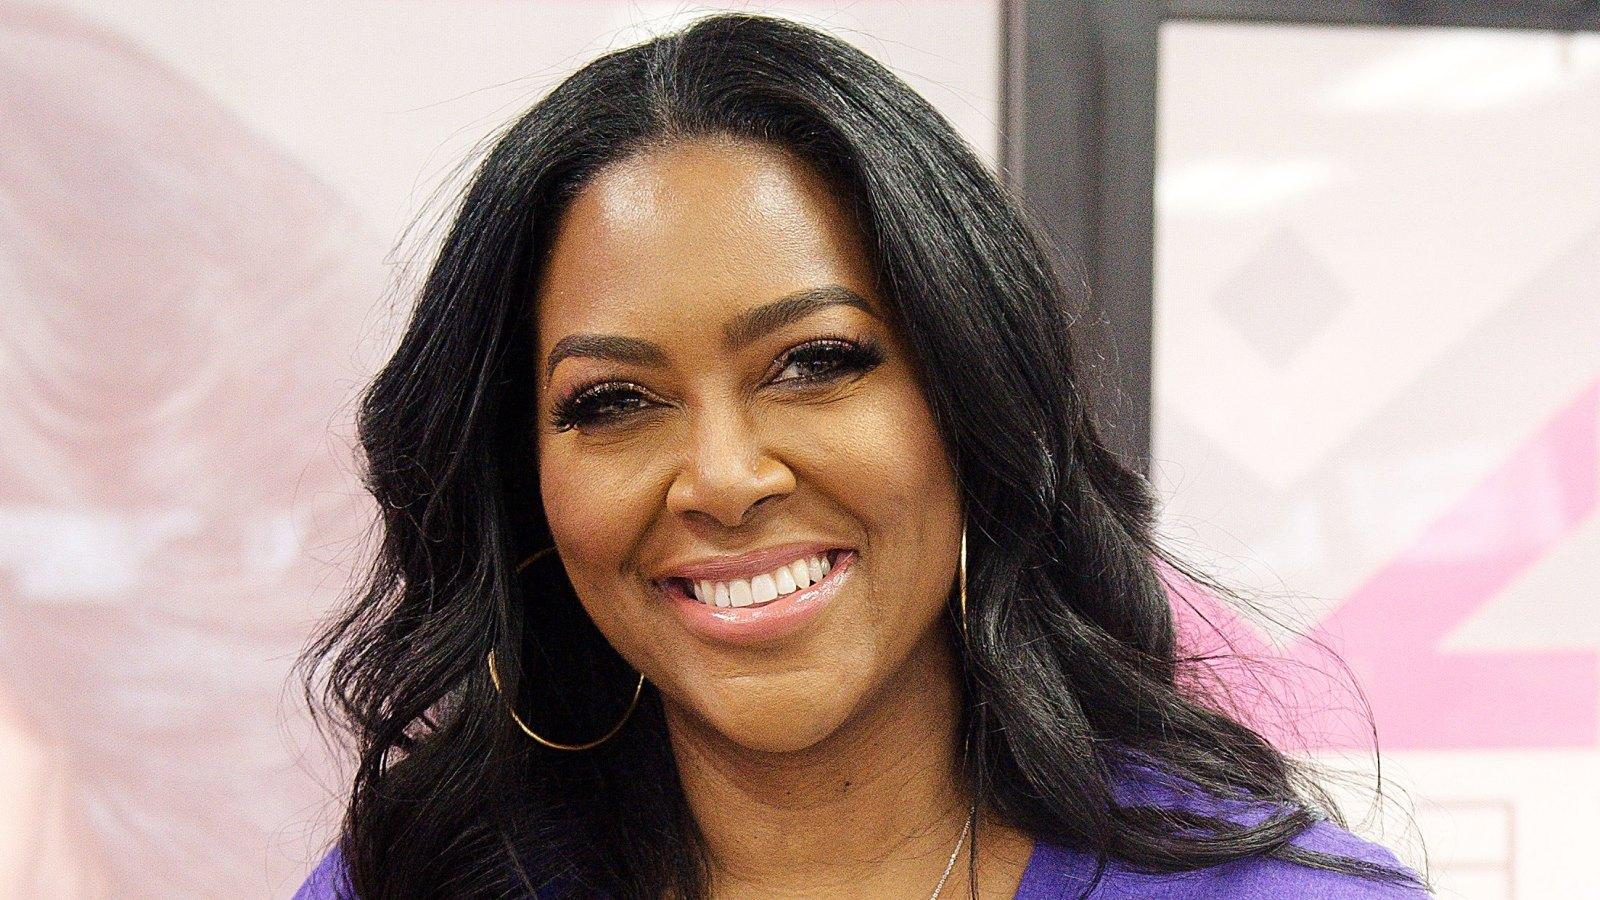 Kenya Moore And Marc Daly's Split Shocked Her RHOA Co-Stars - The Ladies Had No Idea They Had Problems!